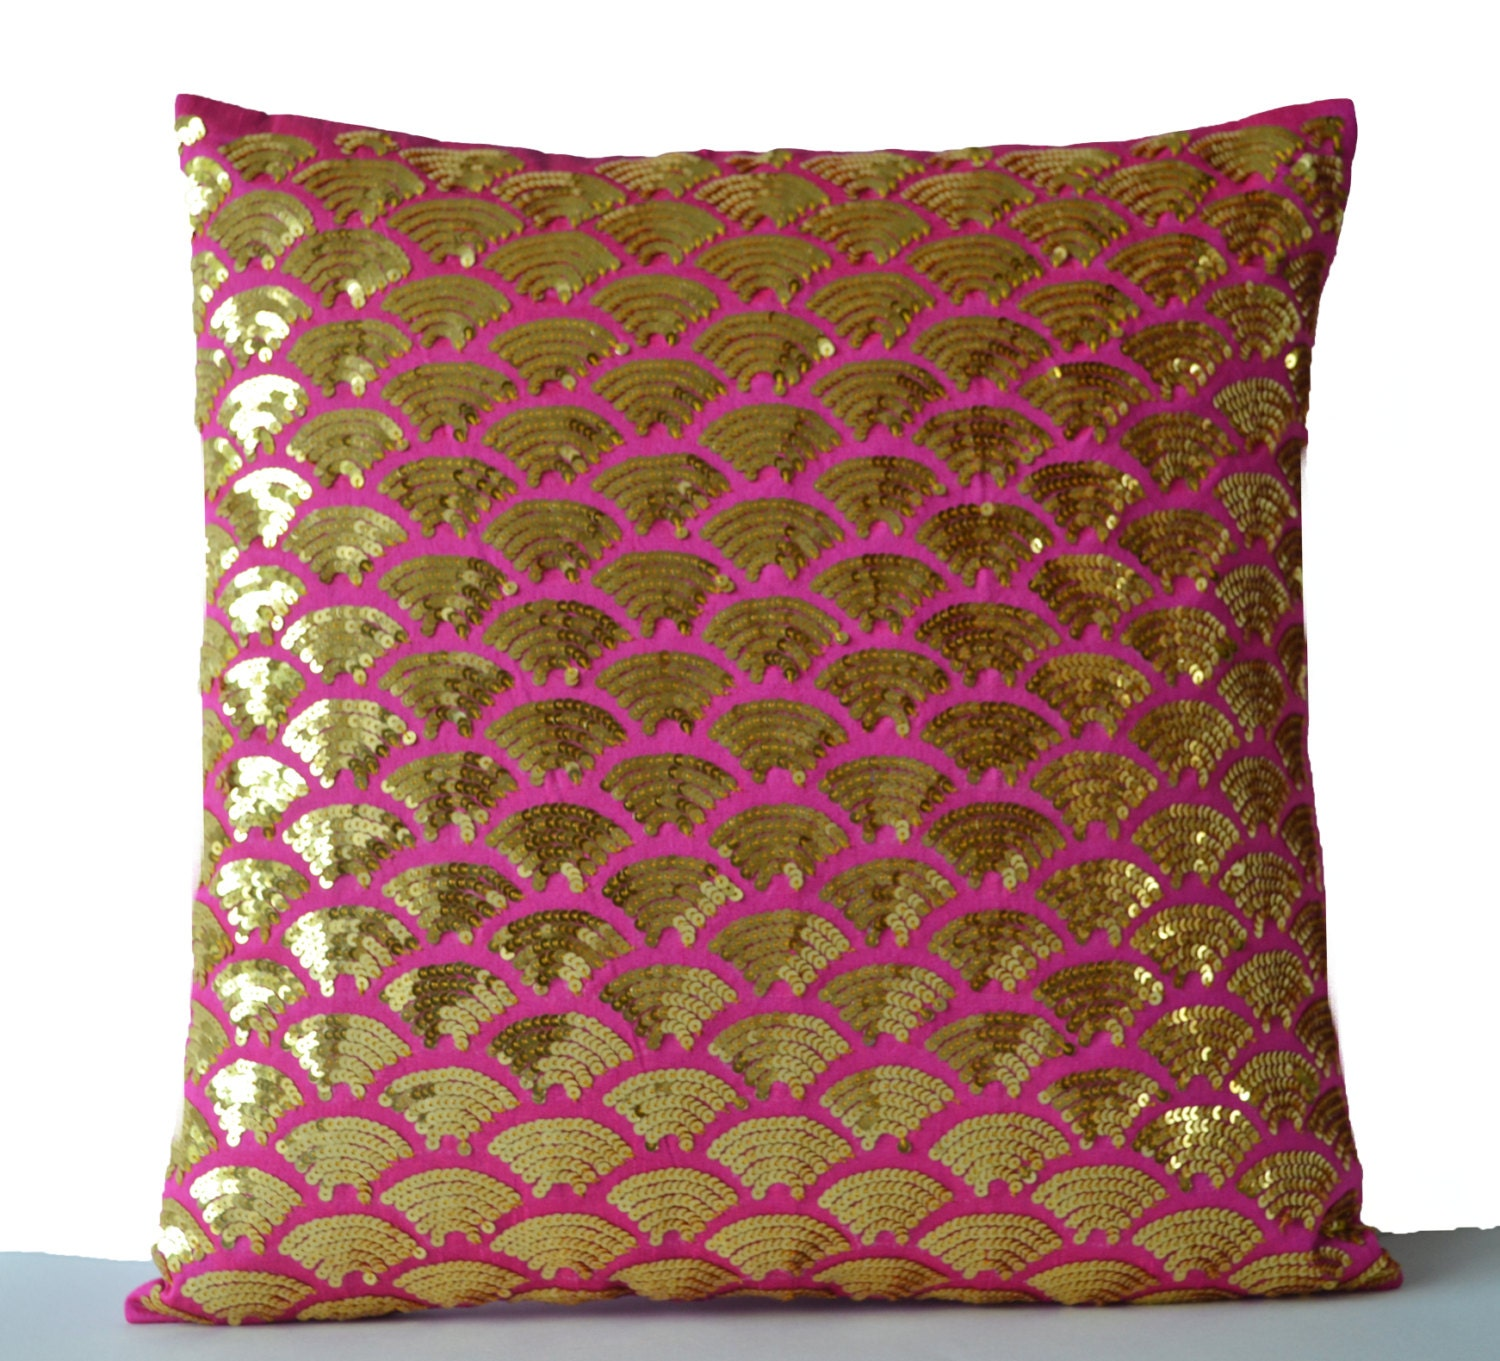 gold trim pillows signature products threshold ashley melina design item width pillowsmelina dunk height by pillow